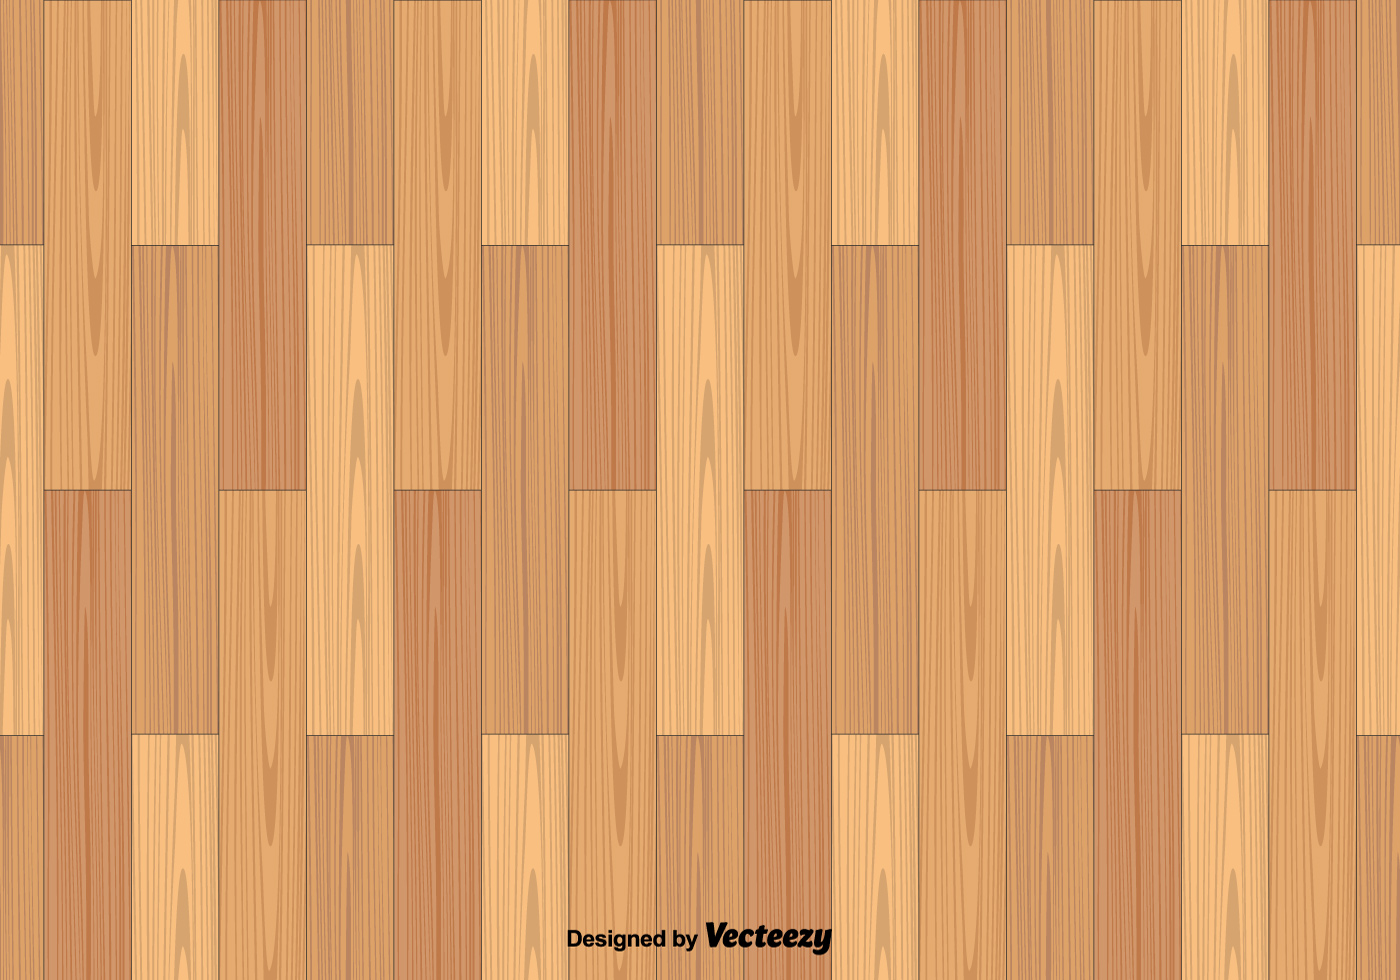 Vector Laminate Background With Wooden Texture - Download Free